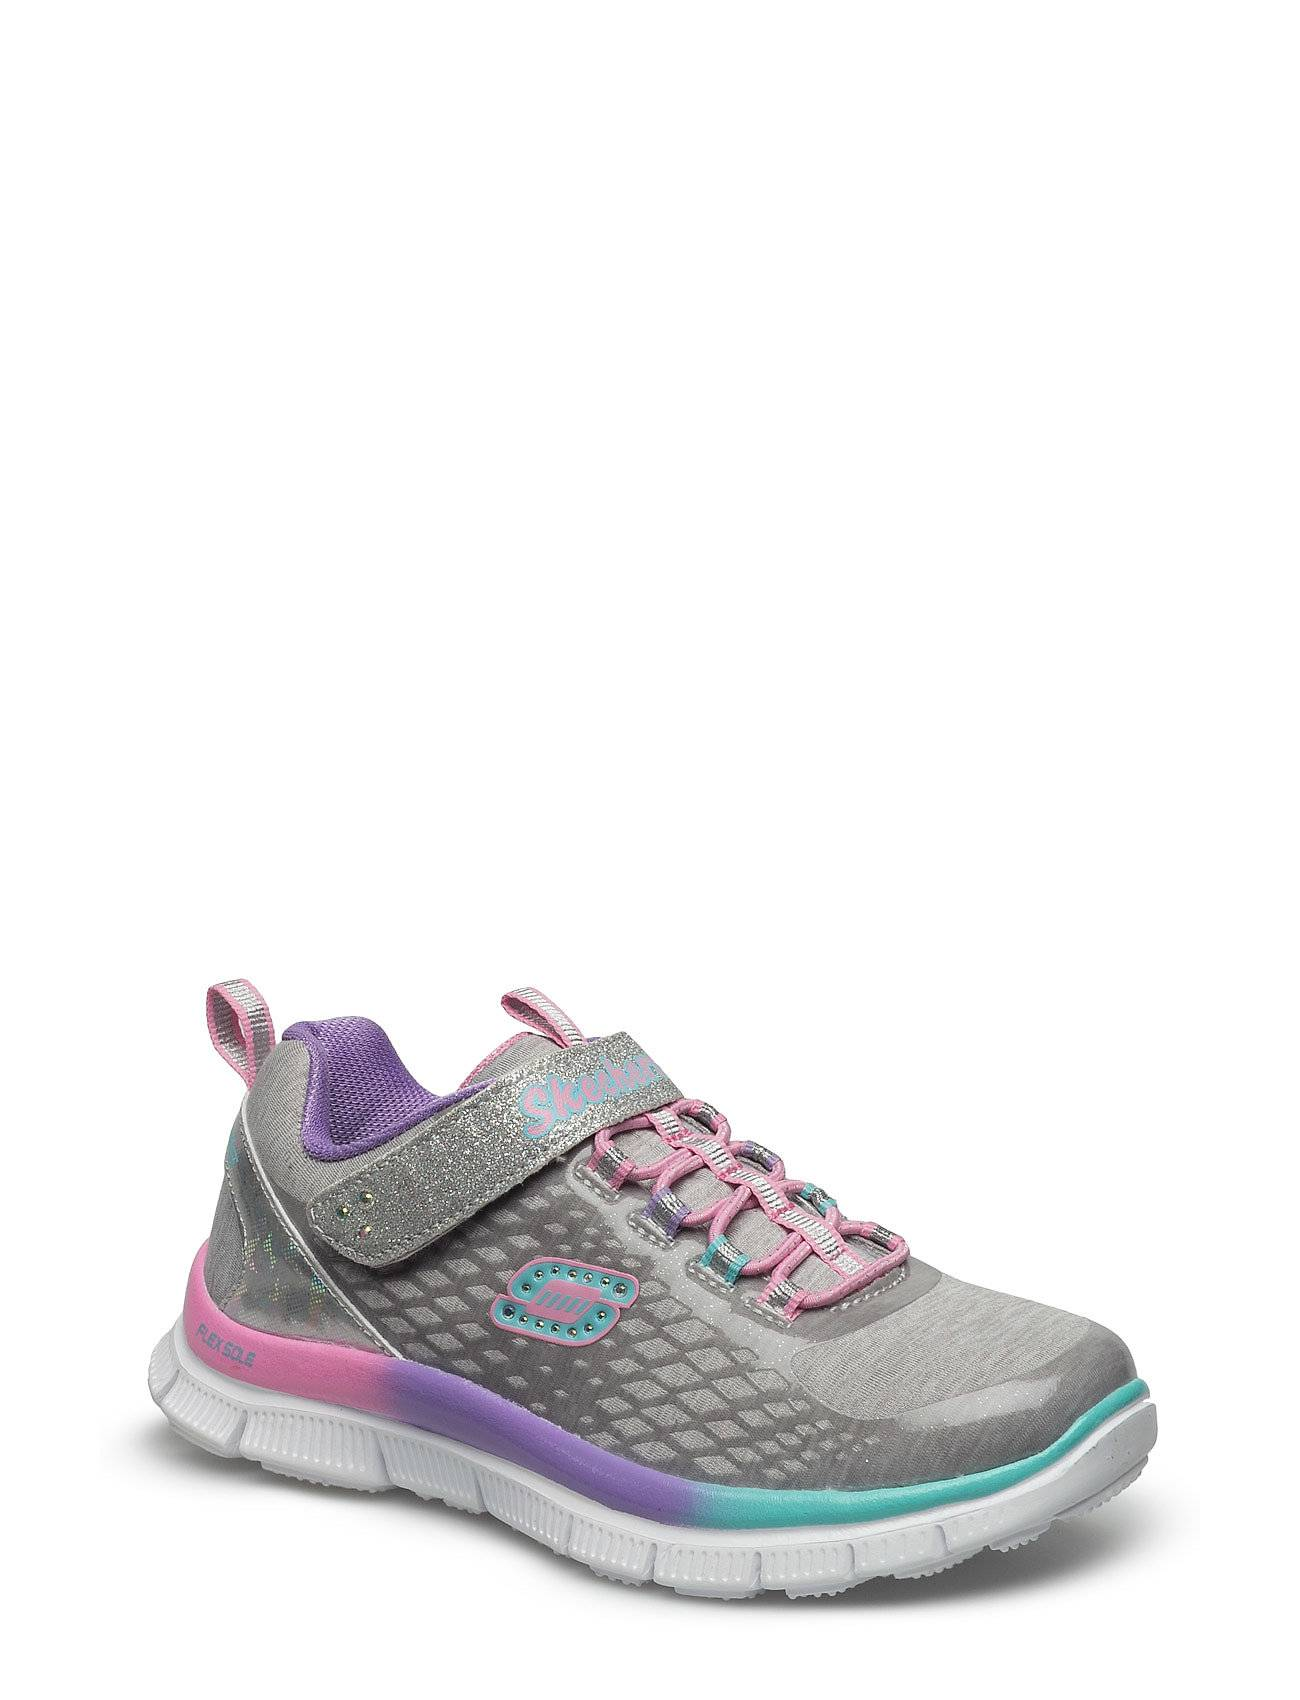 Skechers Girls Skech Appeal - Sparktacular